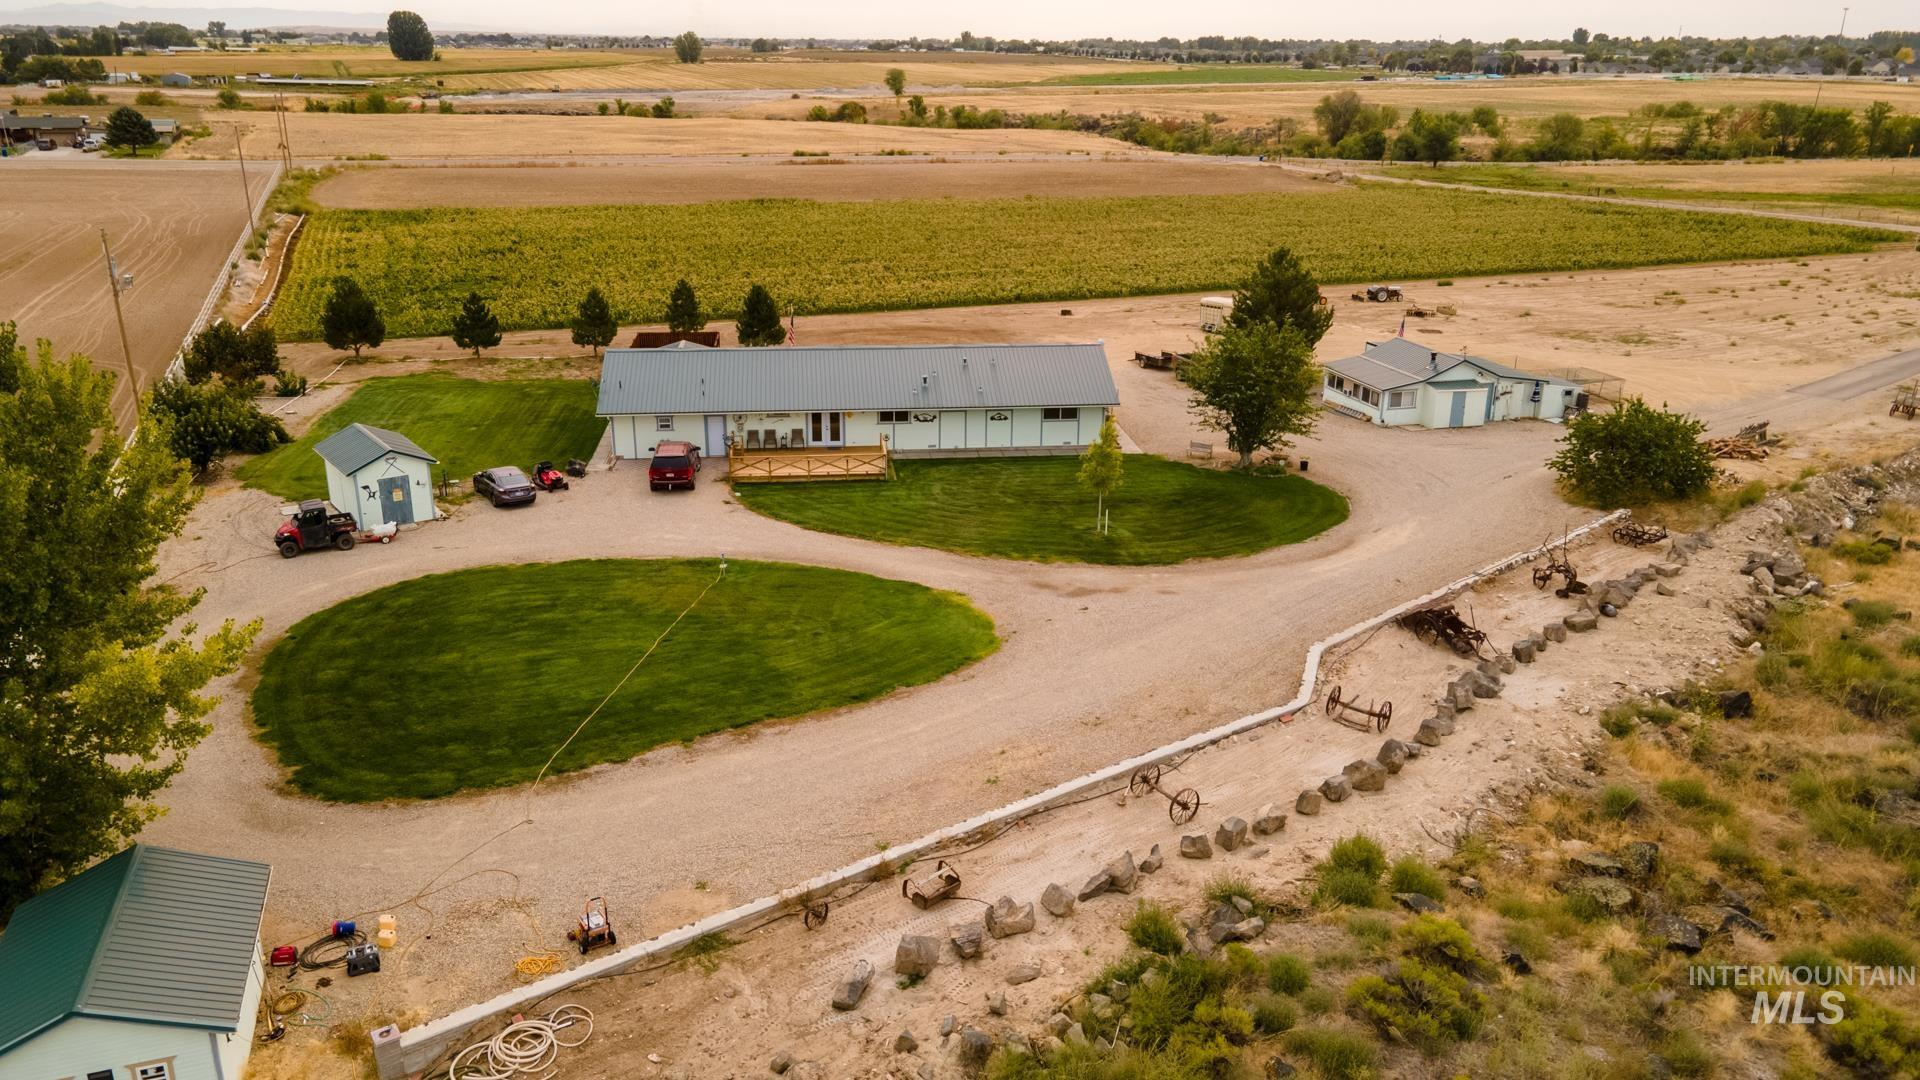 Great opportunity to own this unique acreage property with a custom single level home. 2 master bedrooms, huge walk in closet, 4Bedroom 3 Bathroom 2080 square foot home located in Kuna on 10 irrigatable acres currently planted in Corn and alfalfa seed.  20x23 wood shop finished with electrical and wood stove. 2 extra storage sheds with concrete floors. 5x48 Sunroom. Bring your cows, horses, toys, etc. Full RV hook ups, cold storage room for hanging meat. New metal roof, new vinyl fencing, enclosed gazebo, full sprinkler system, etc. Close to everything. No CC&R's fruit trees, low maintenance landscaping.. a must see for anyone seeking country living! Listing agent is related to seller - Lini K Chytka, Voice: 208-249-0671, Boise Premier Real Estate, Main: 888-506-2234,